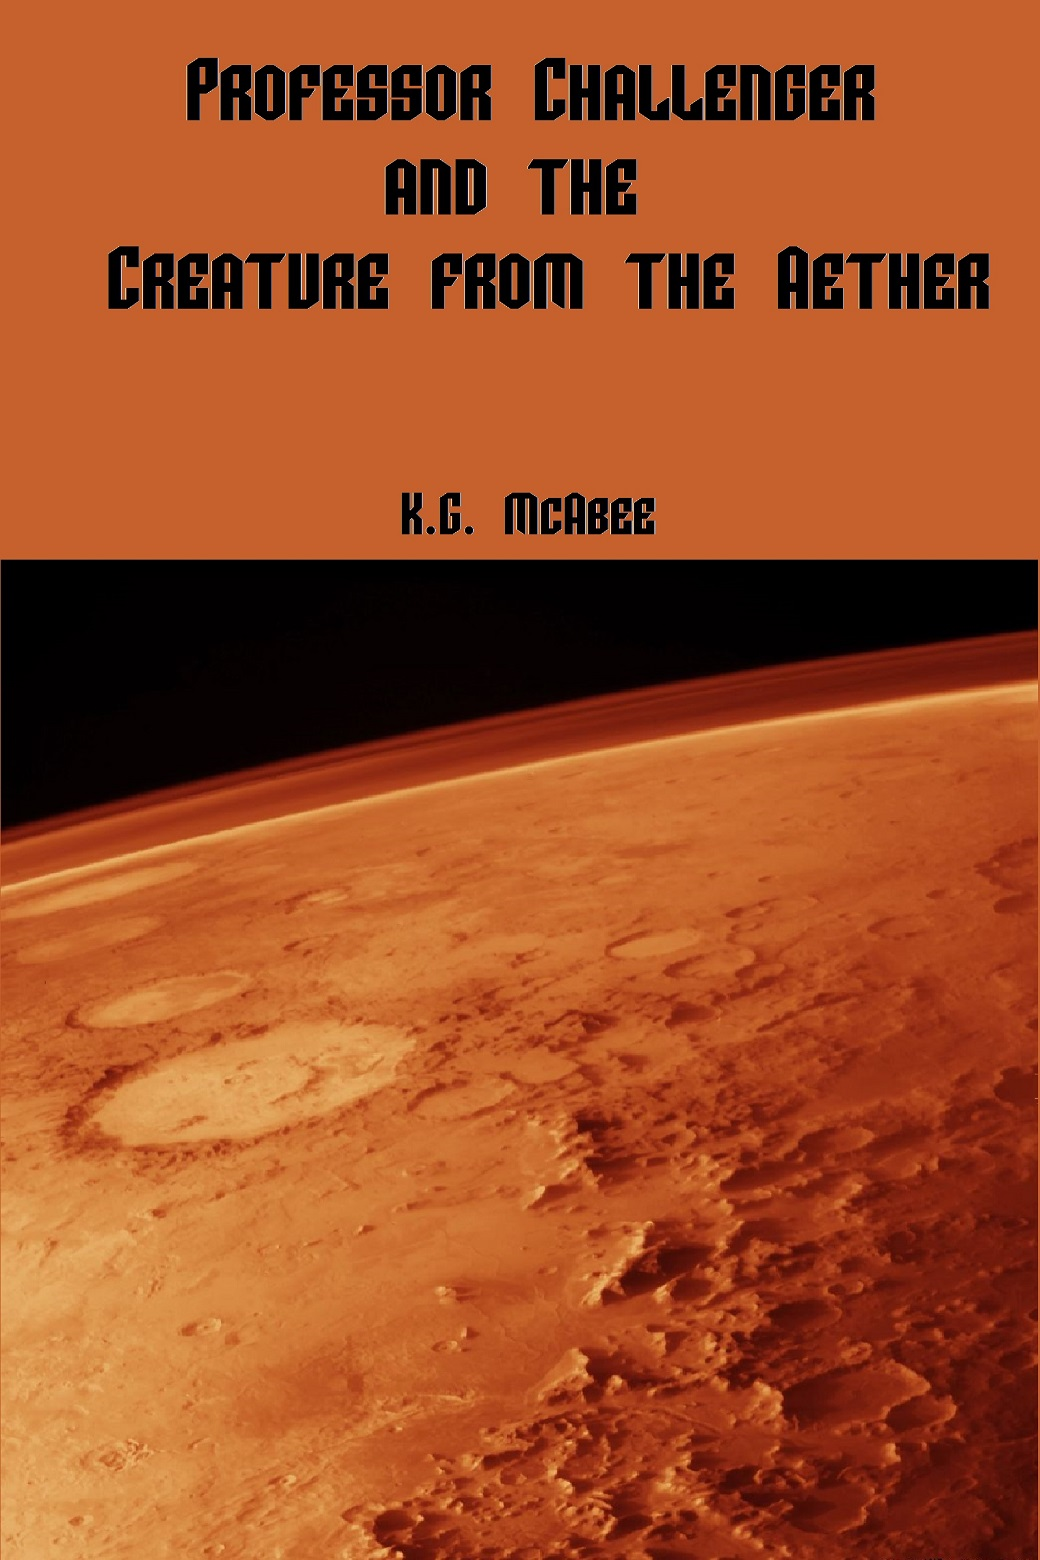 Prof. Challenger and the Creature from the Aether Image